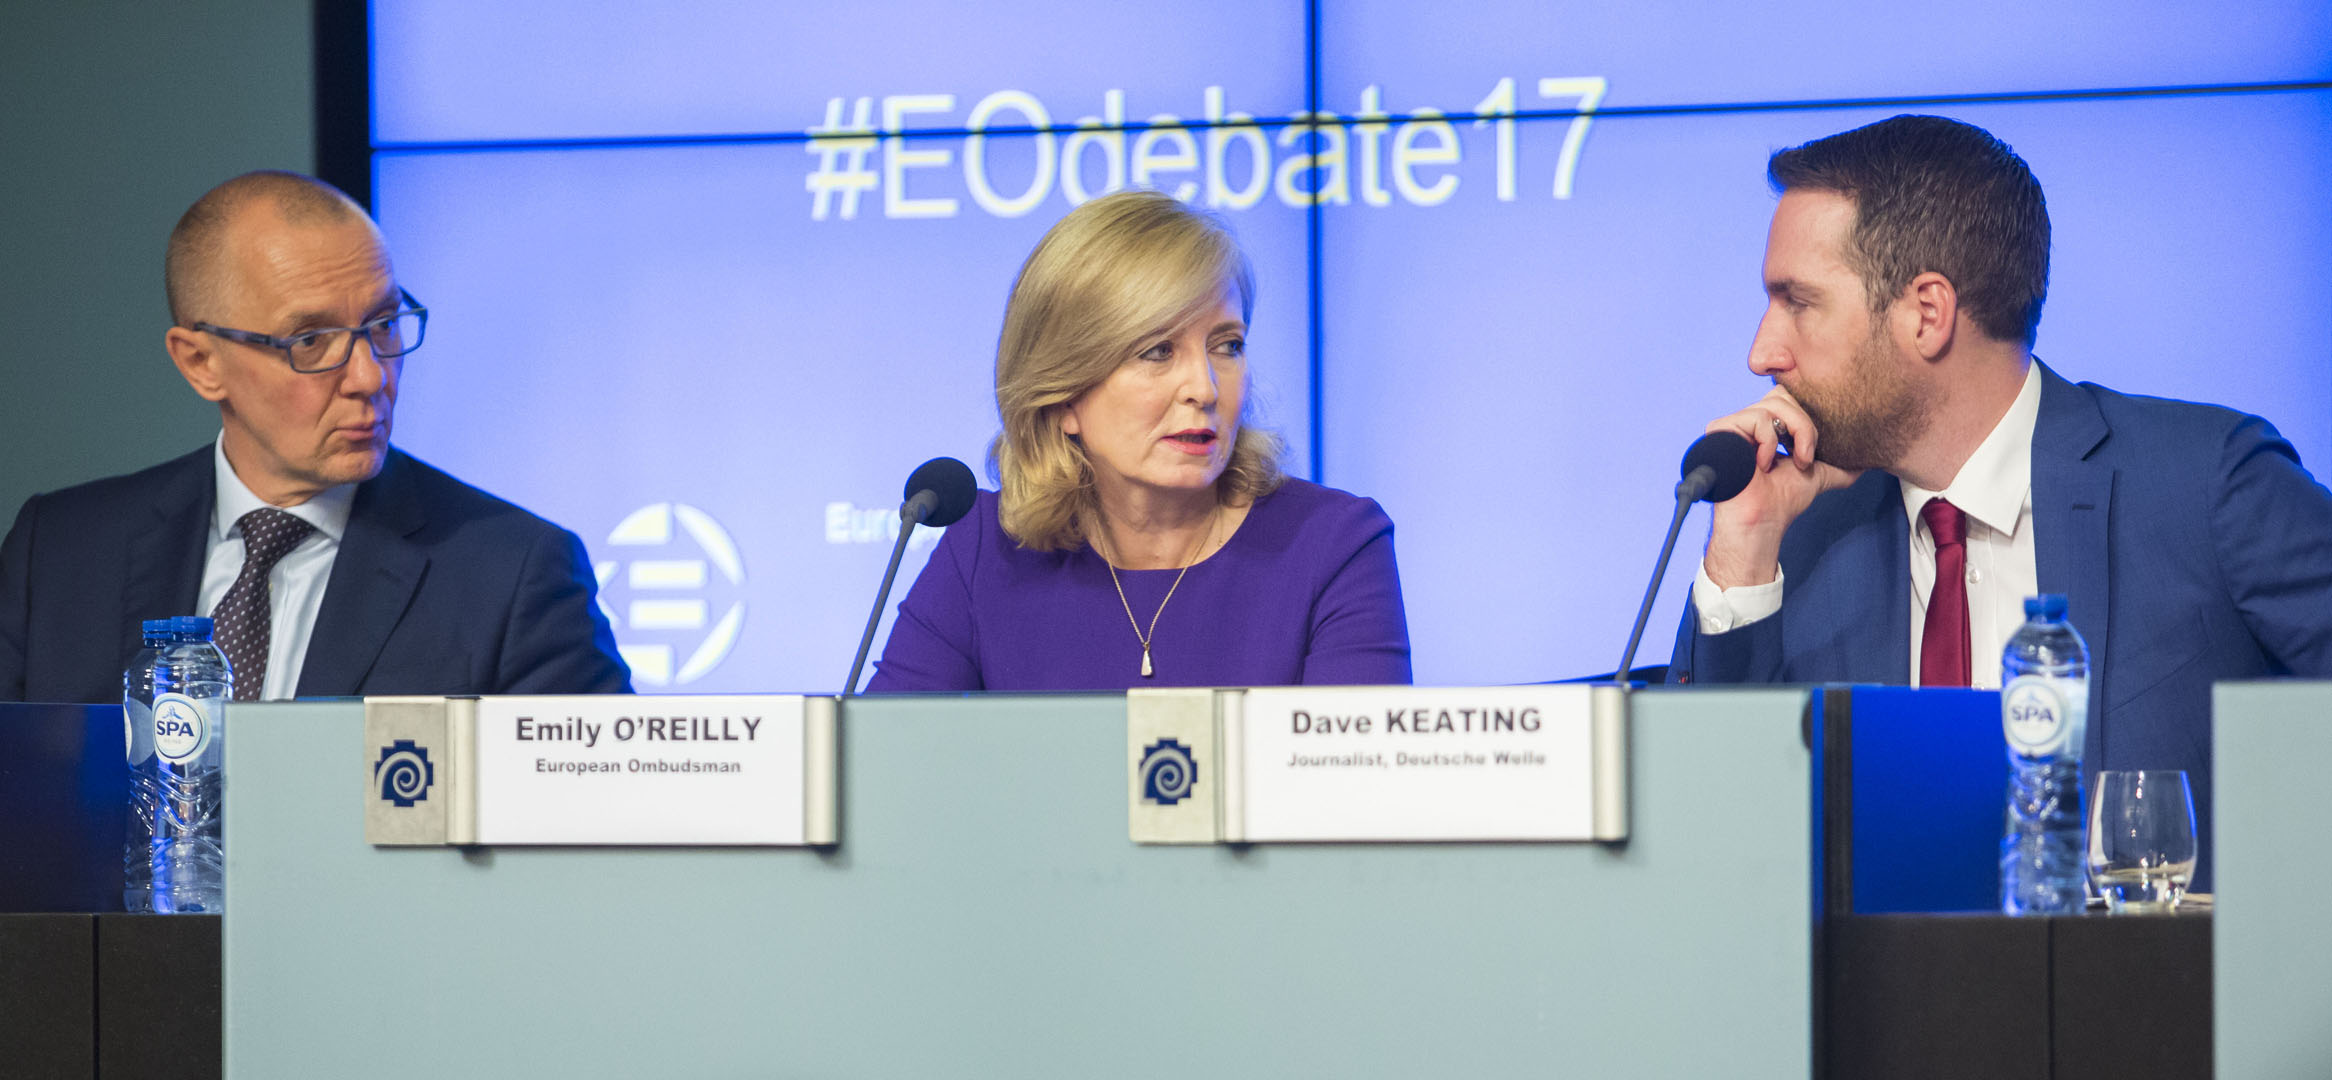 """The European Ombudsman, Emily O'Reilly, with panellist Bernhard Url, Executive Director of the EFSA and moderator, Dave Keating, at the European Ombudsman's public event entitled """"EU agencies: How to manage the risk of reputational damage"""" in October."""